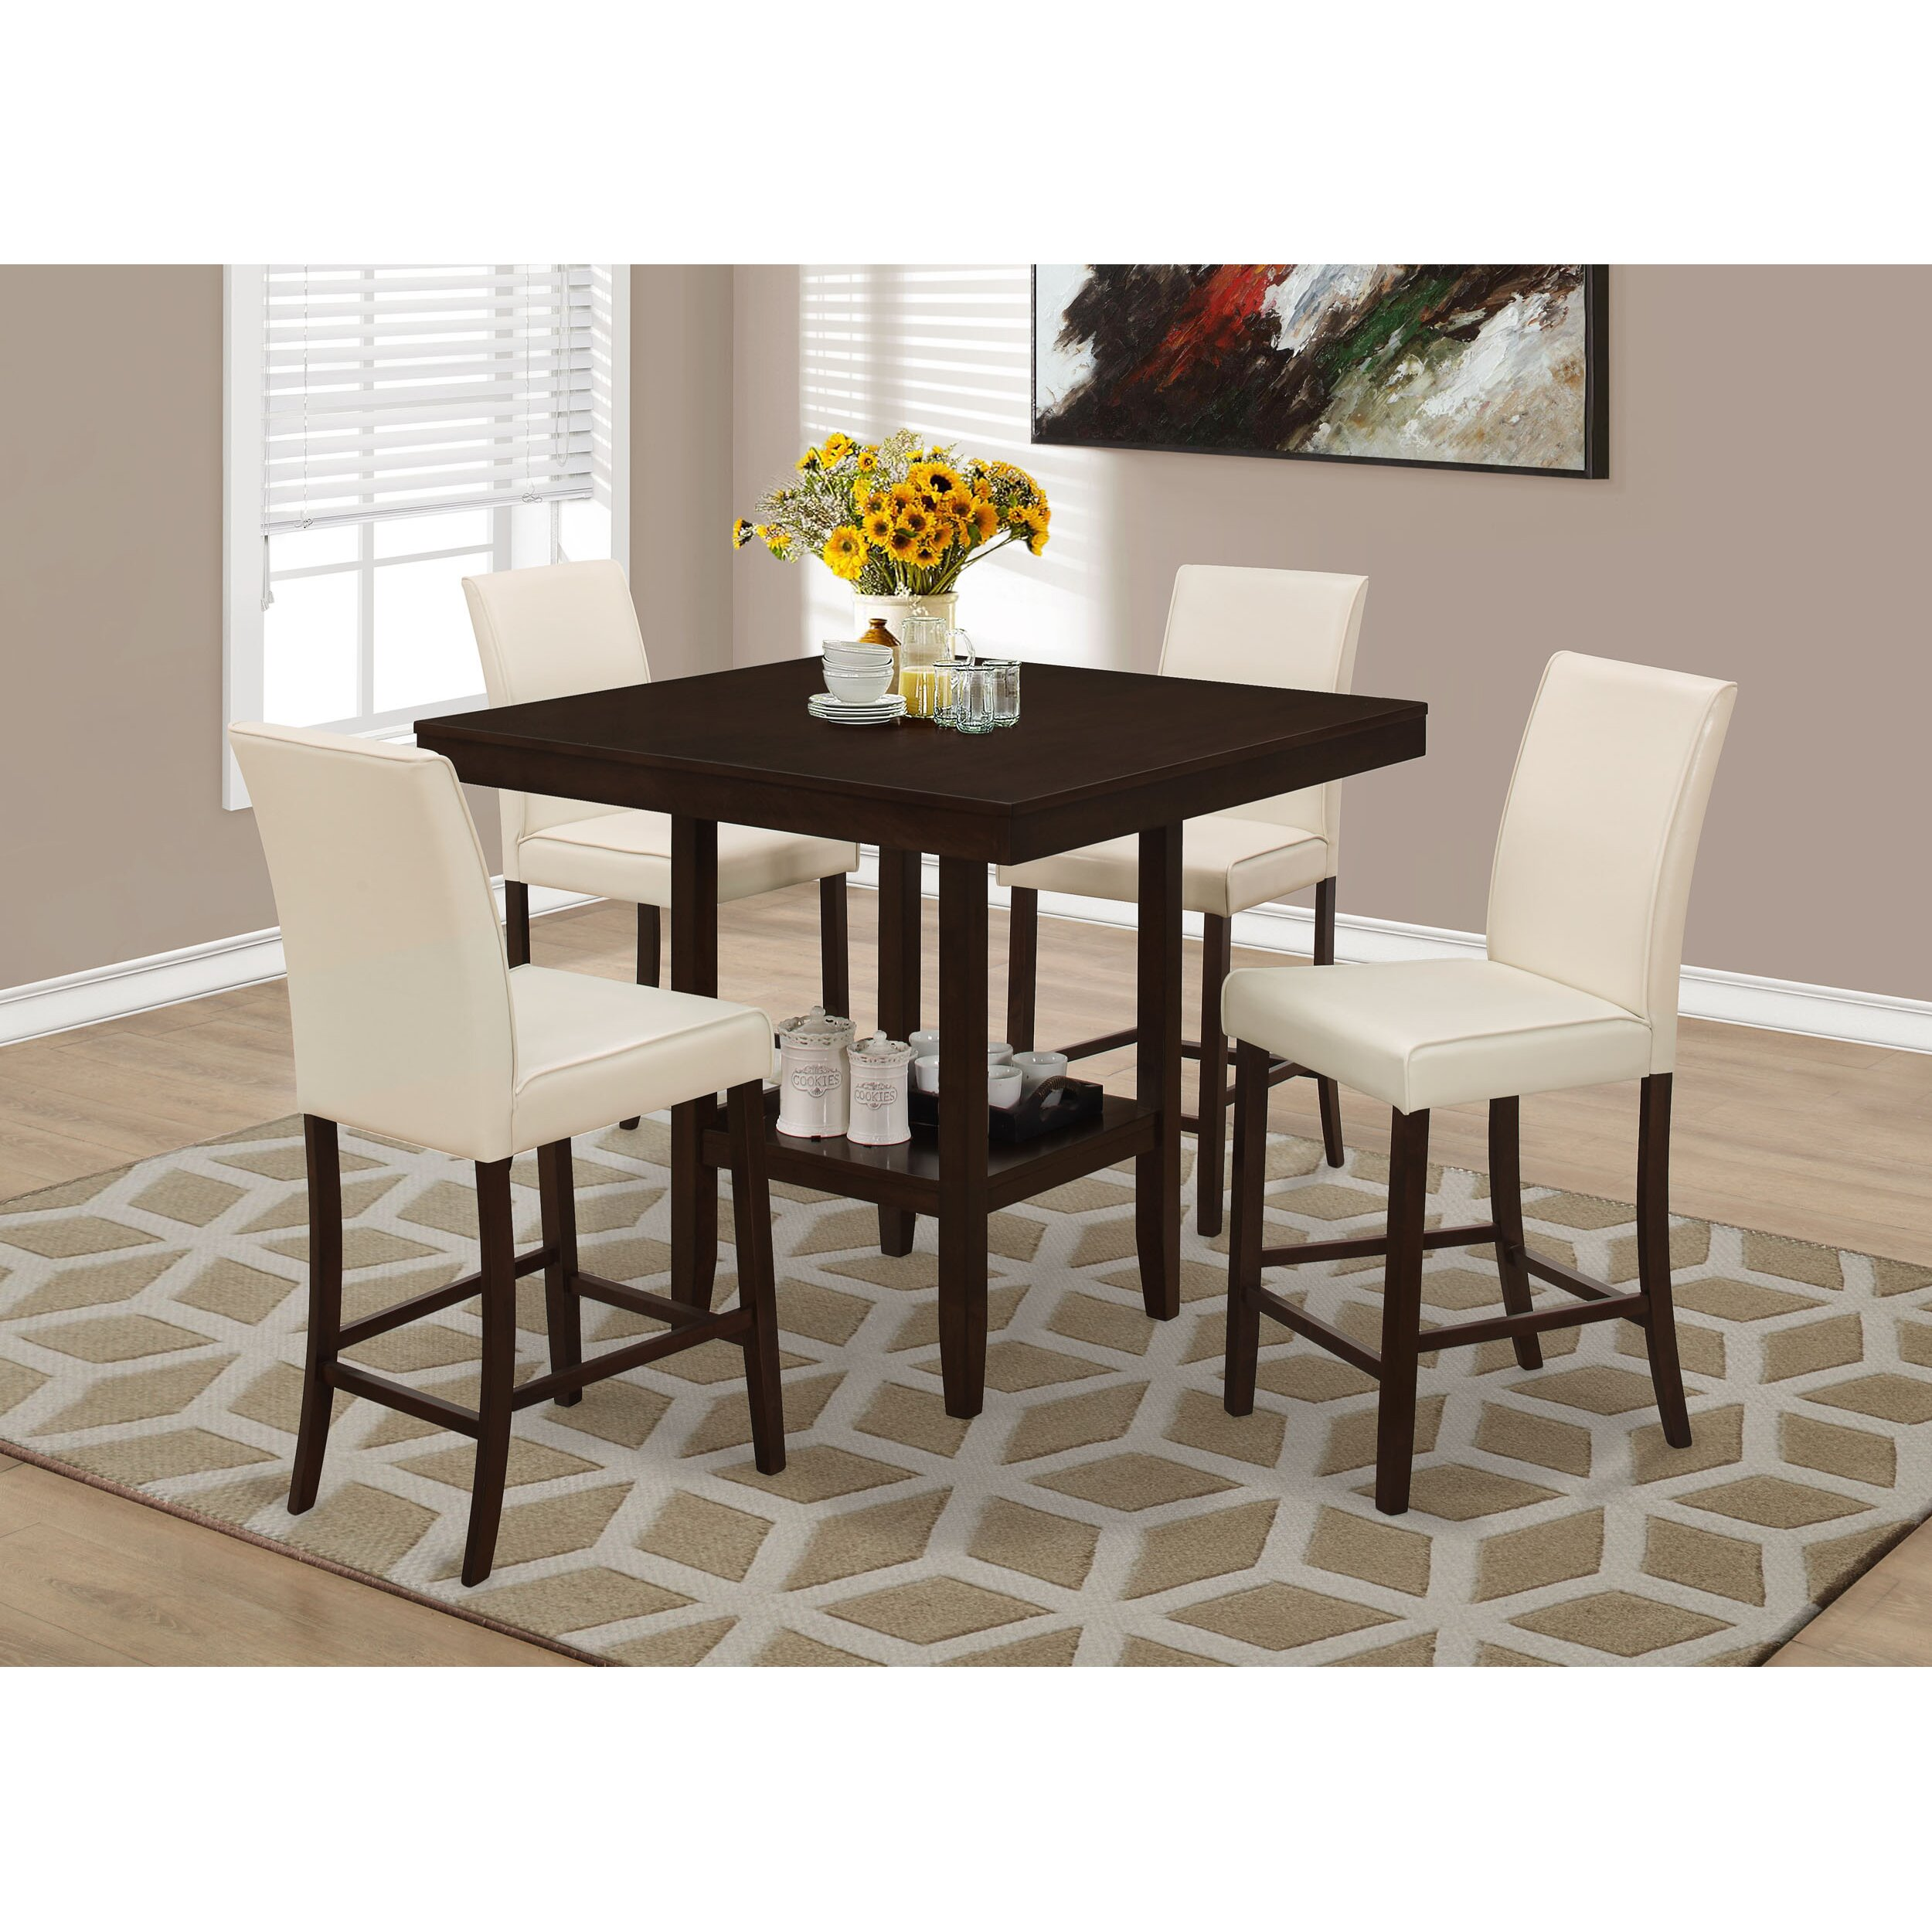 Monarch Specialties Inc Counter Height Dining Table  : Monarch Specialties Inc Counter Height Dining Table from www.wayfair.com size 2500 x 2500 jpeg 833kB